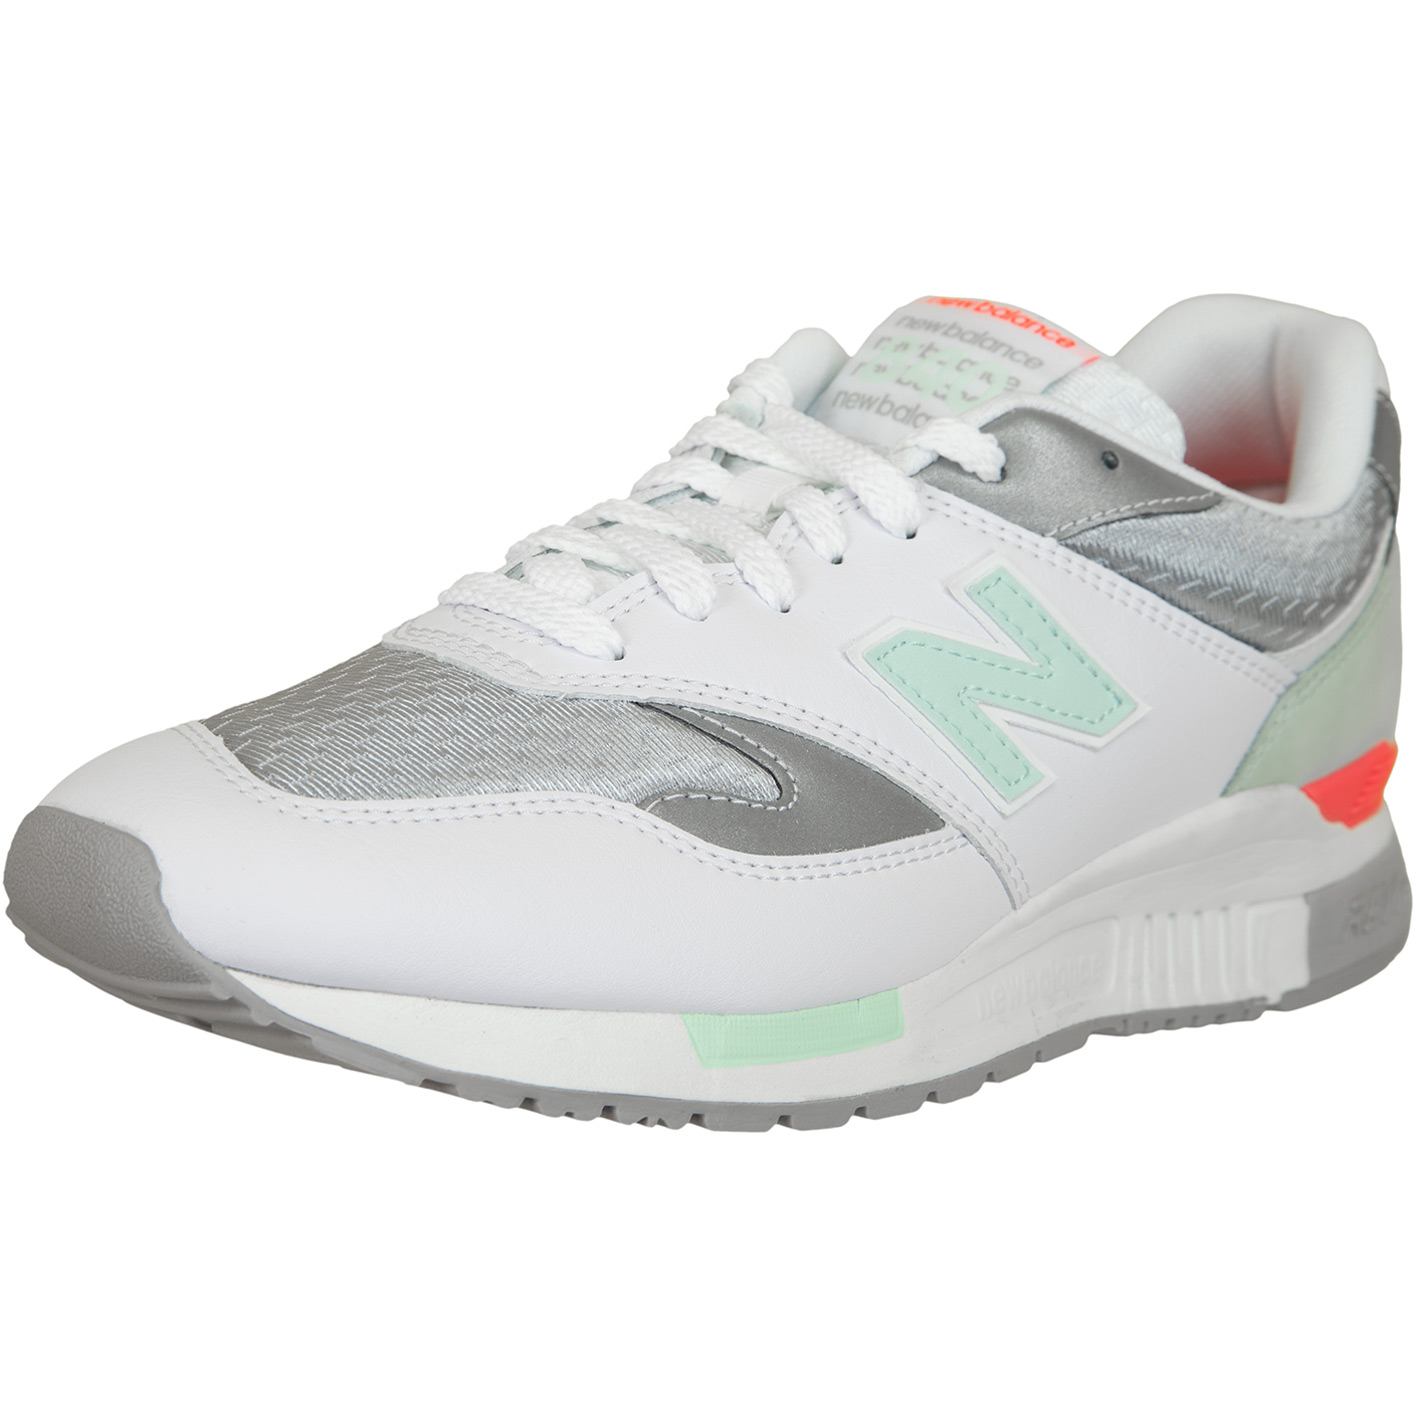 cheap for discount 65bf6 1592f New Balance Sneaker 840 Synthetik/Textil/Leder weiß/silber